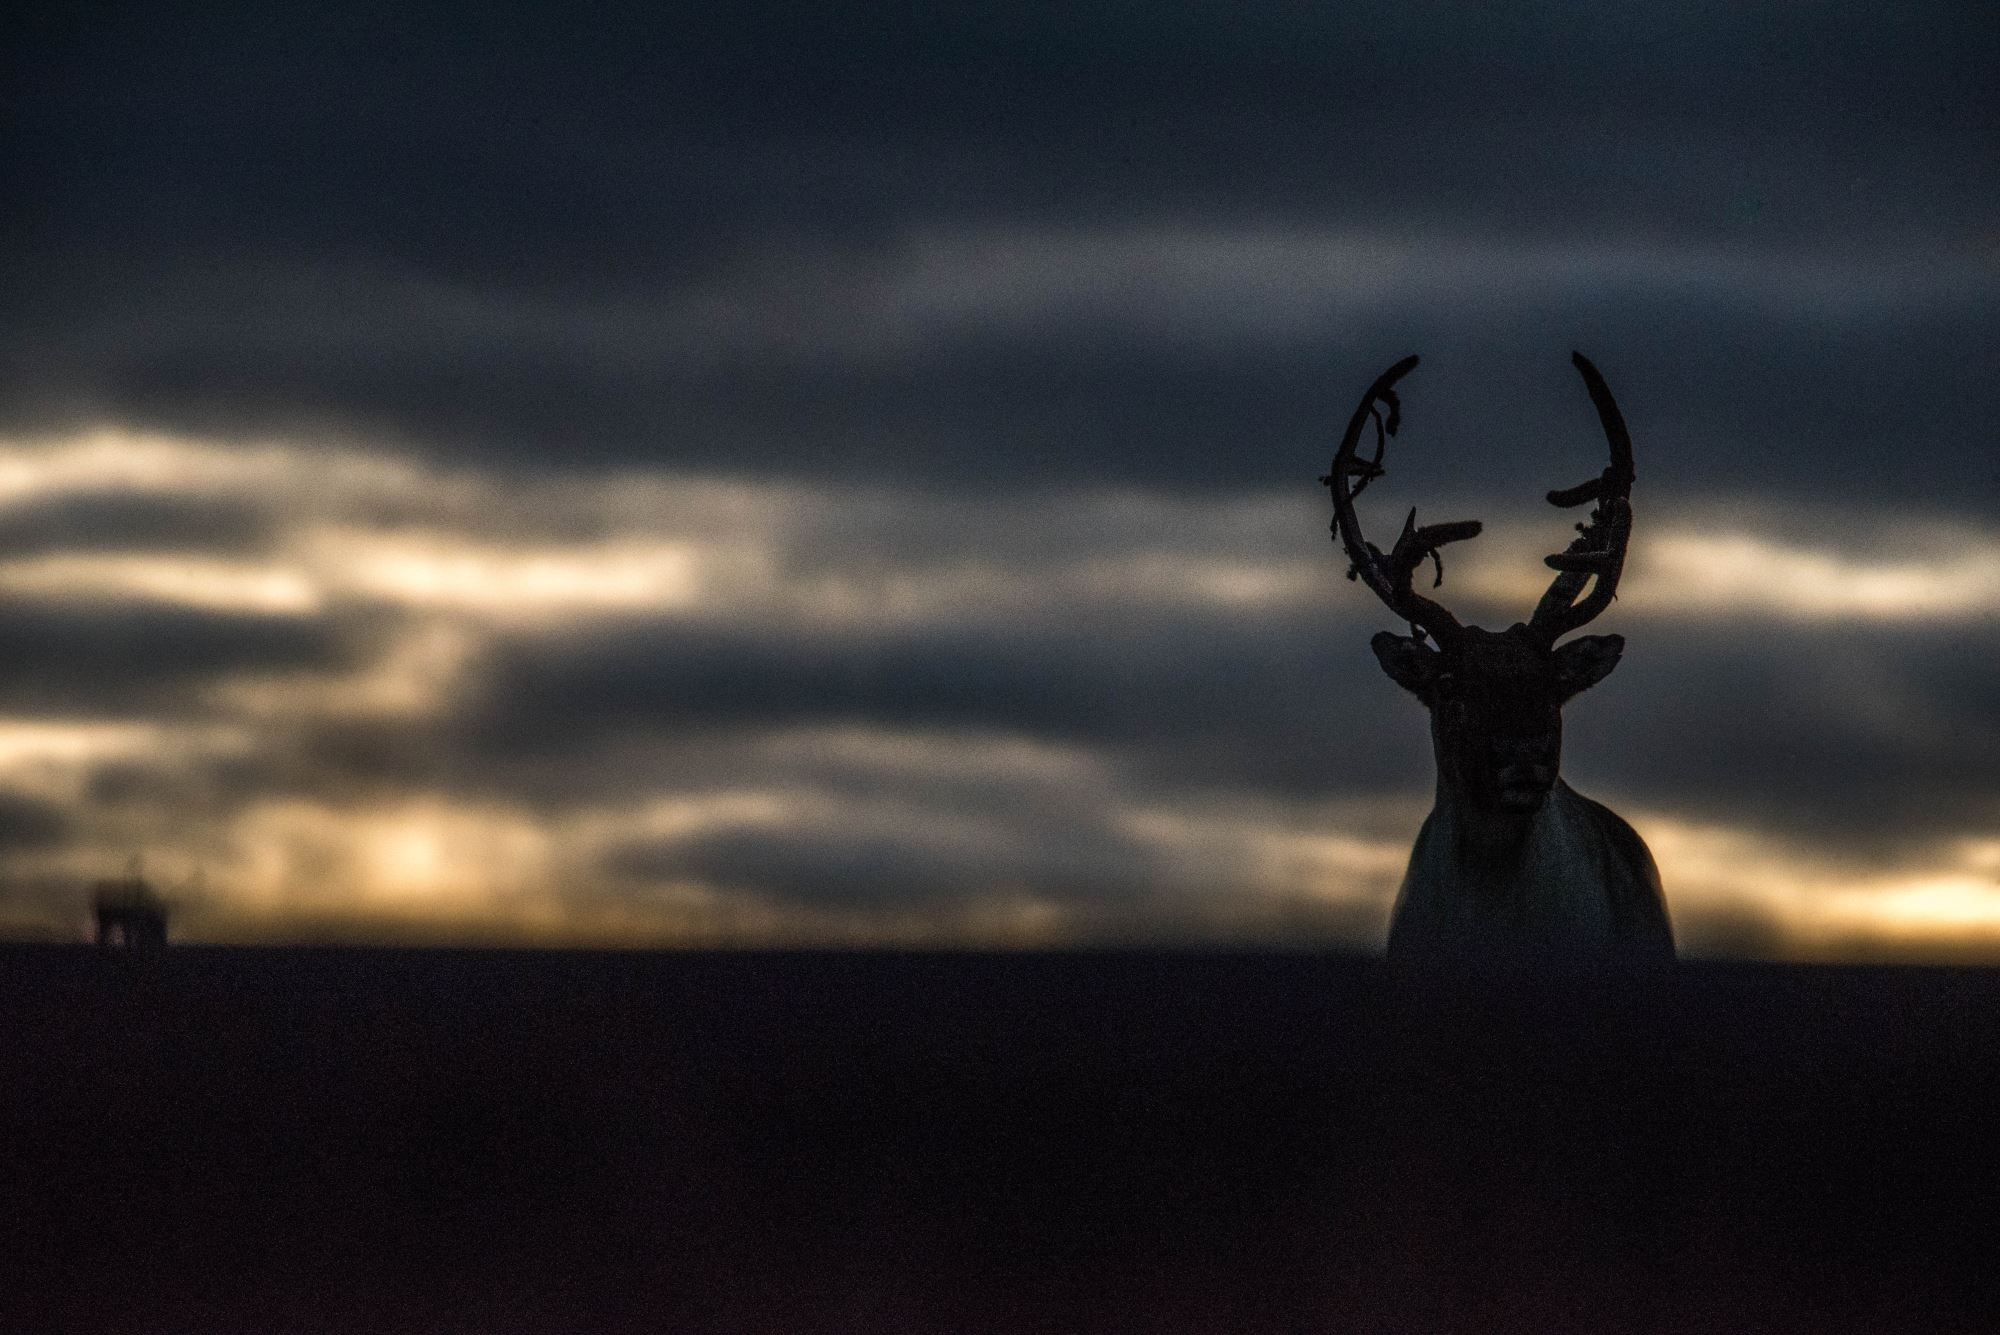 Wild reindeer in late sunset